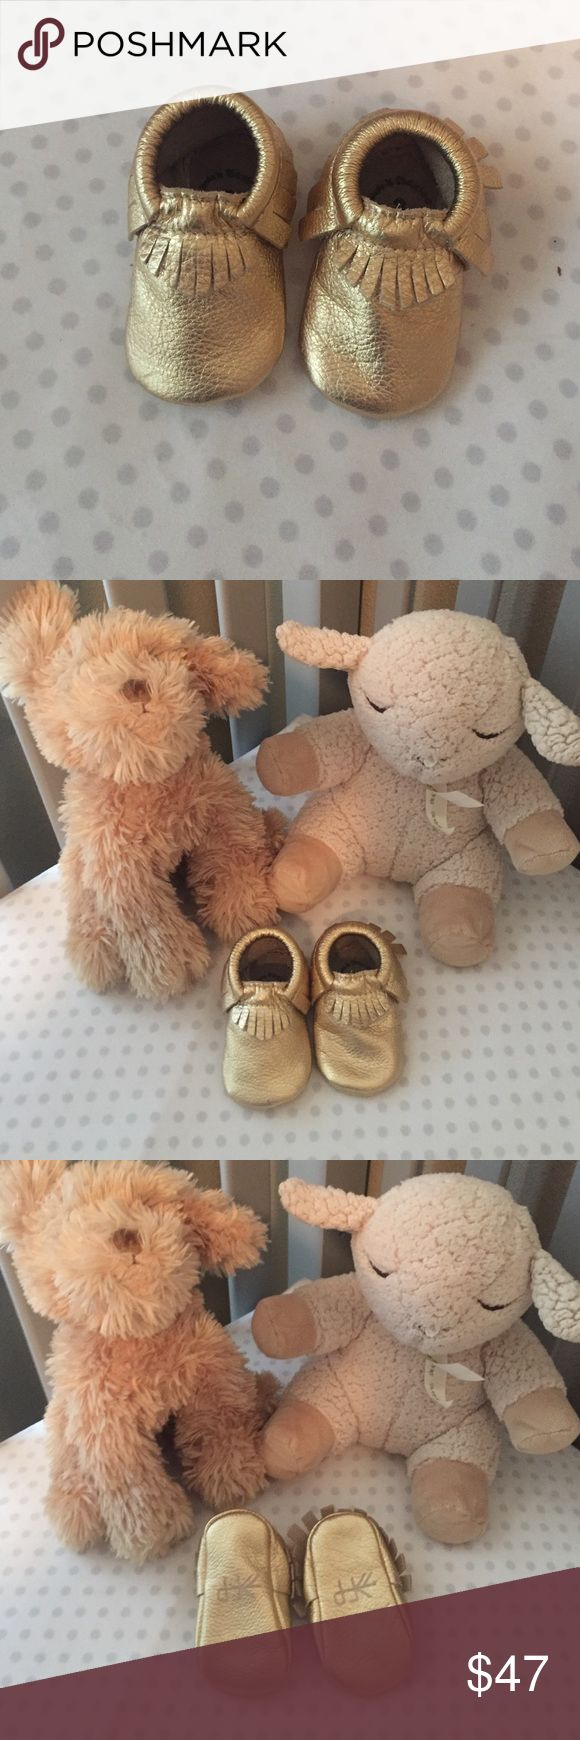 Adorable gold Freshly Picked Mocassins Perfect condition. Love these more than any other item. Have 2 pairs, saving one as a keepsake! Freshly Picked Shoes Moccasins